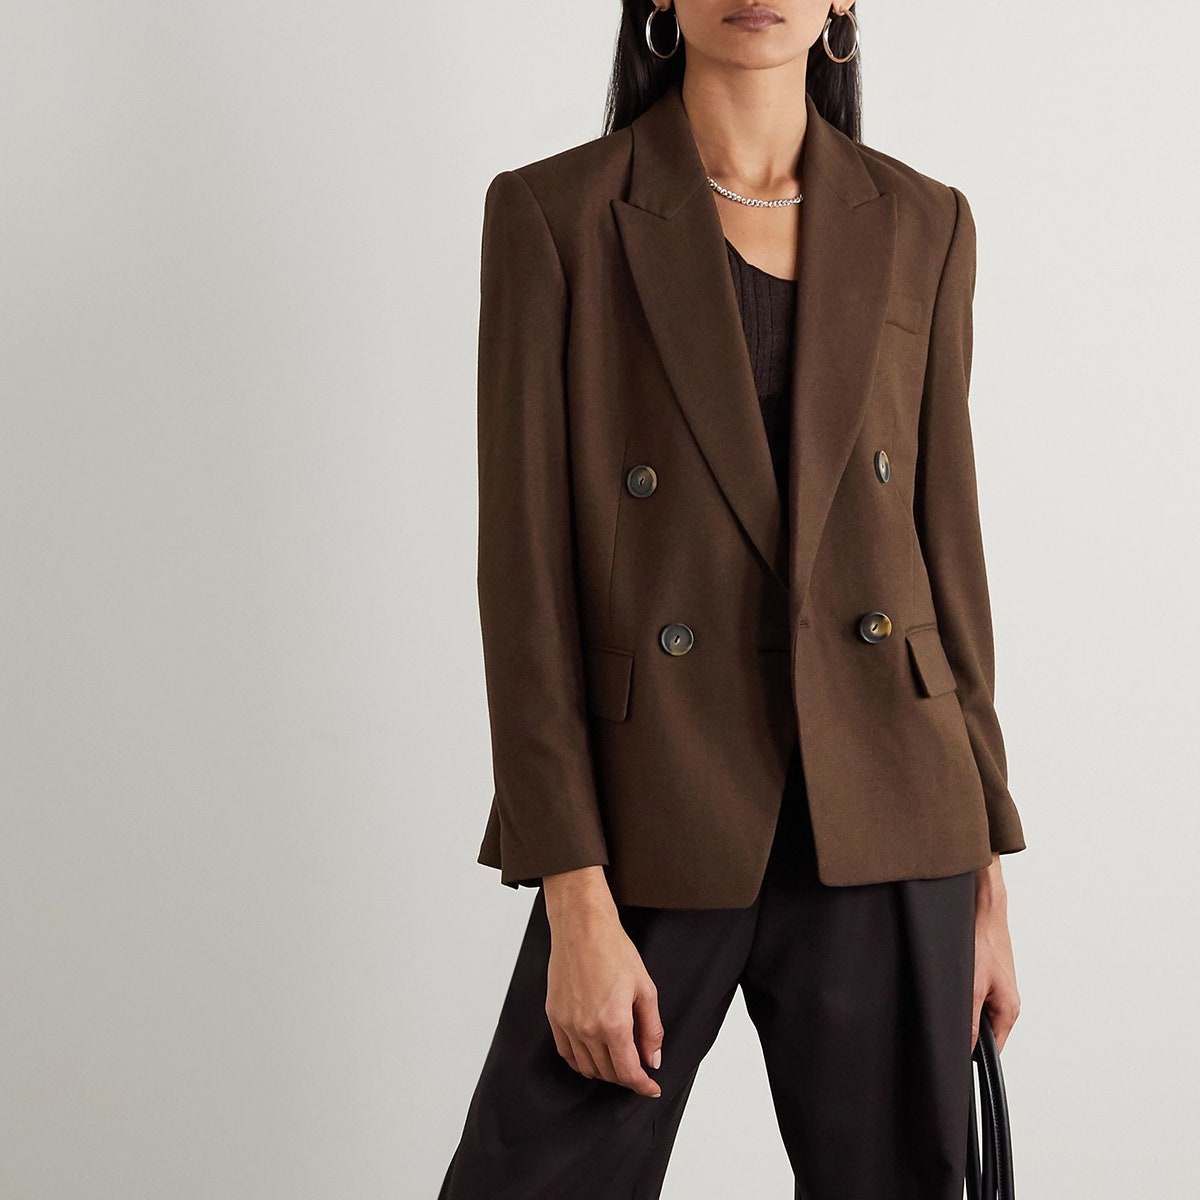 vince double breasted brown blazer